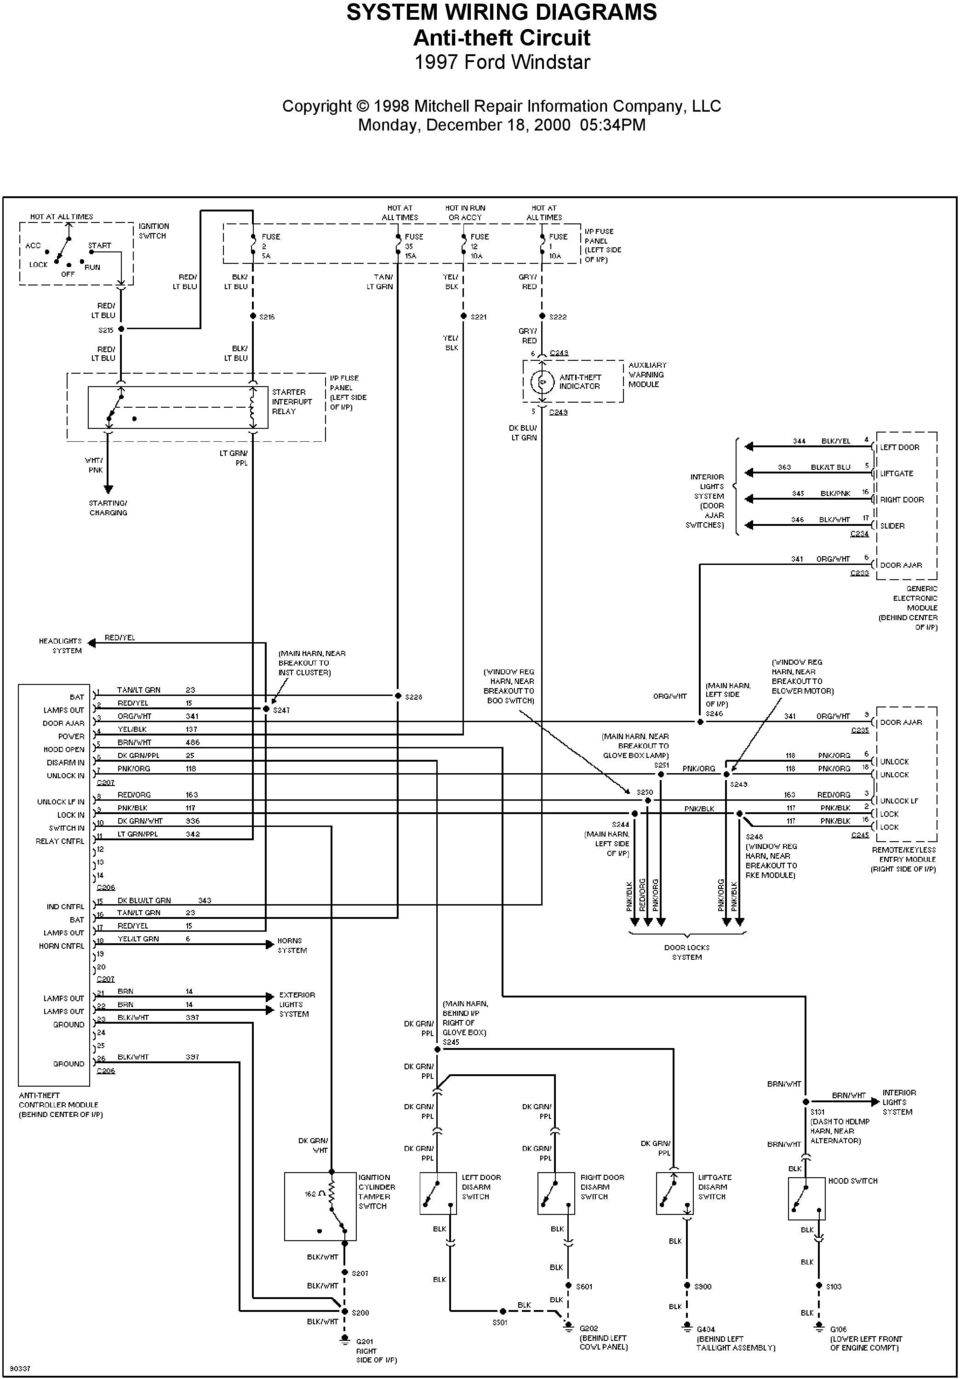 Wiring Diagram 97 Ford Windstar Body Start Building A 2003 Fuse System Diagrams Air Conditioning Circuits 1997 Rh Docplayer Net Relay